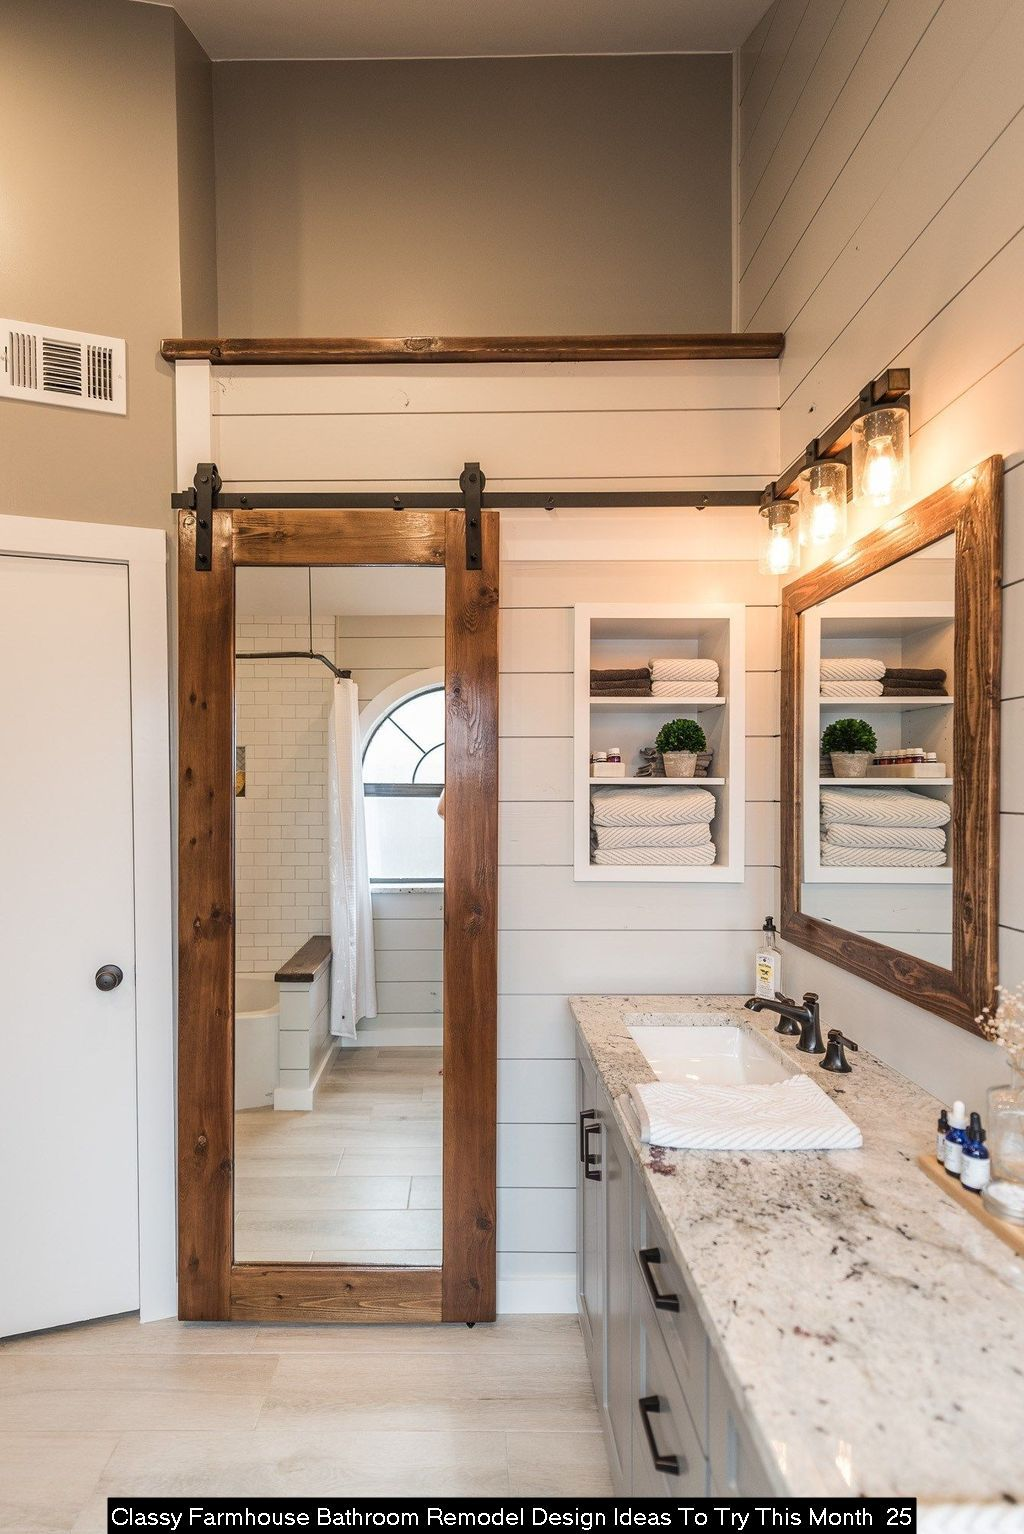 20 Classy Farmhouse Bathroom Remodel Design Ideas To Try This Month Rustic Master Bathroom Bathroom Remodel Master Master Bathroom Renovation